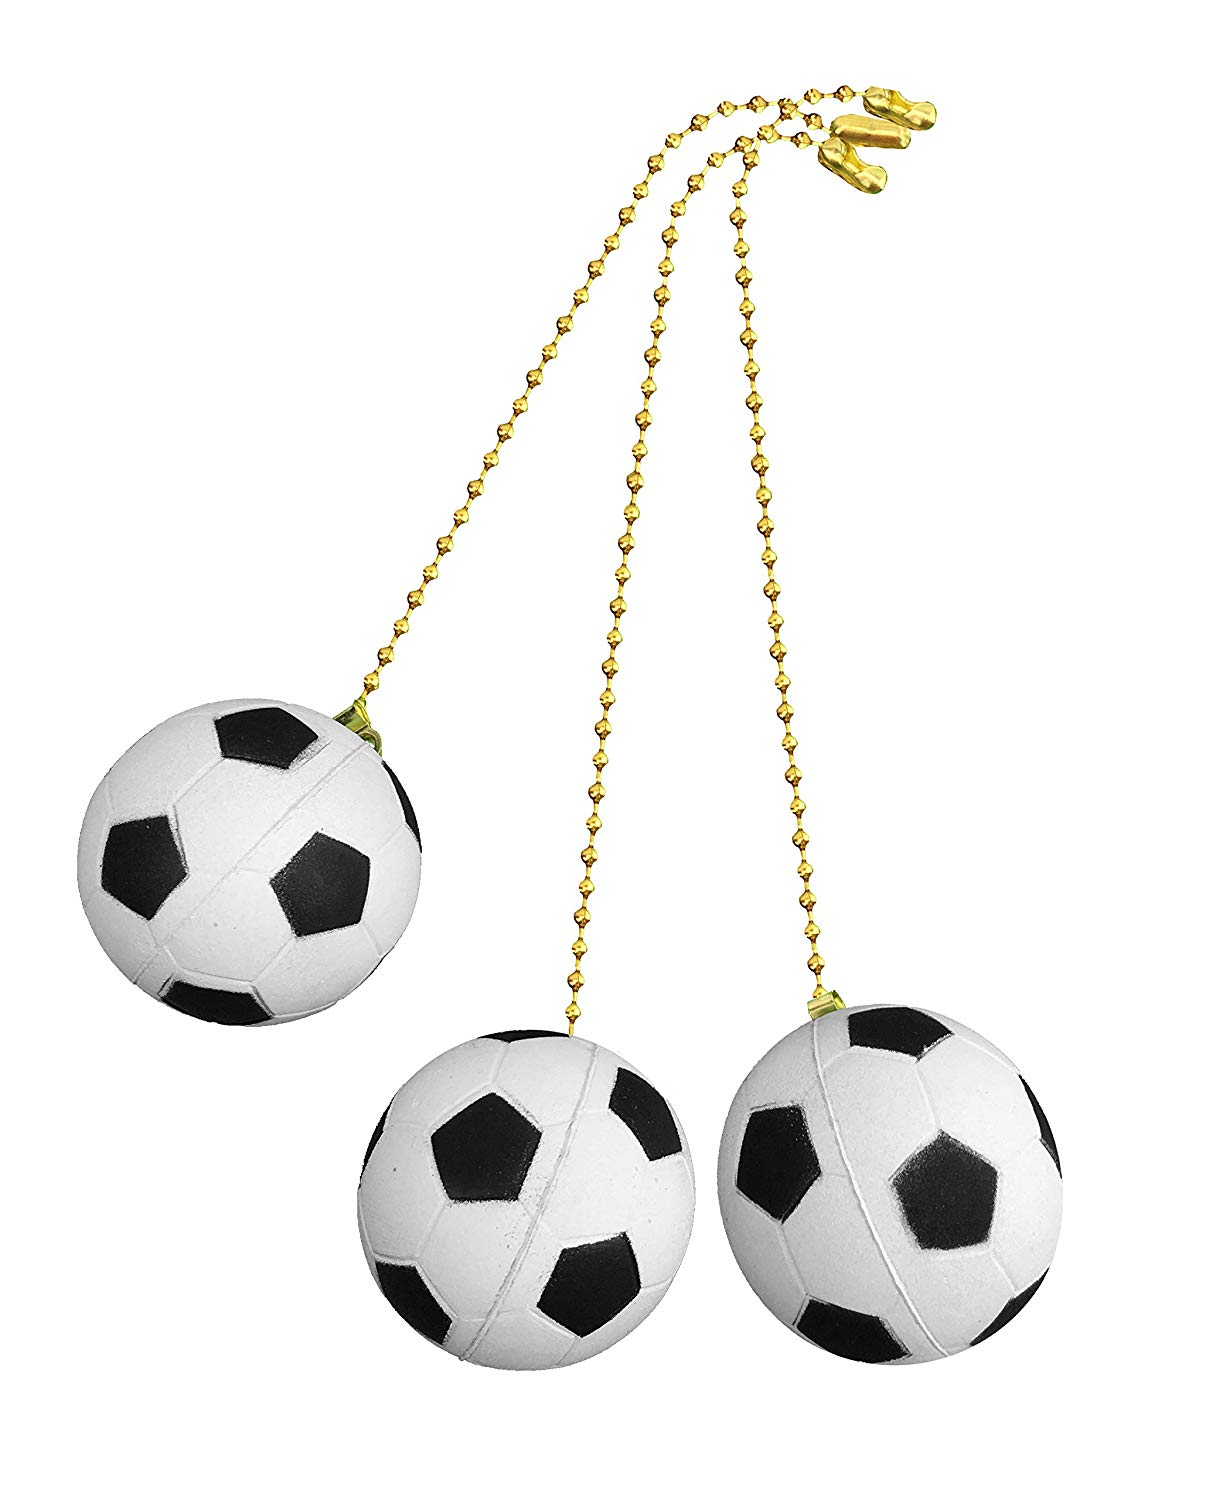 Decorative Soccer Ball Sports Ceiling fan pull with beaded chain - 3 Pack - FA1006